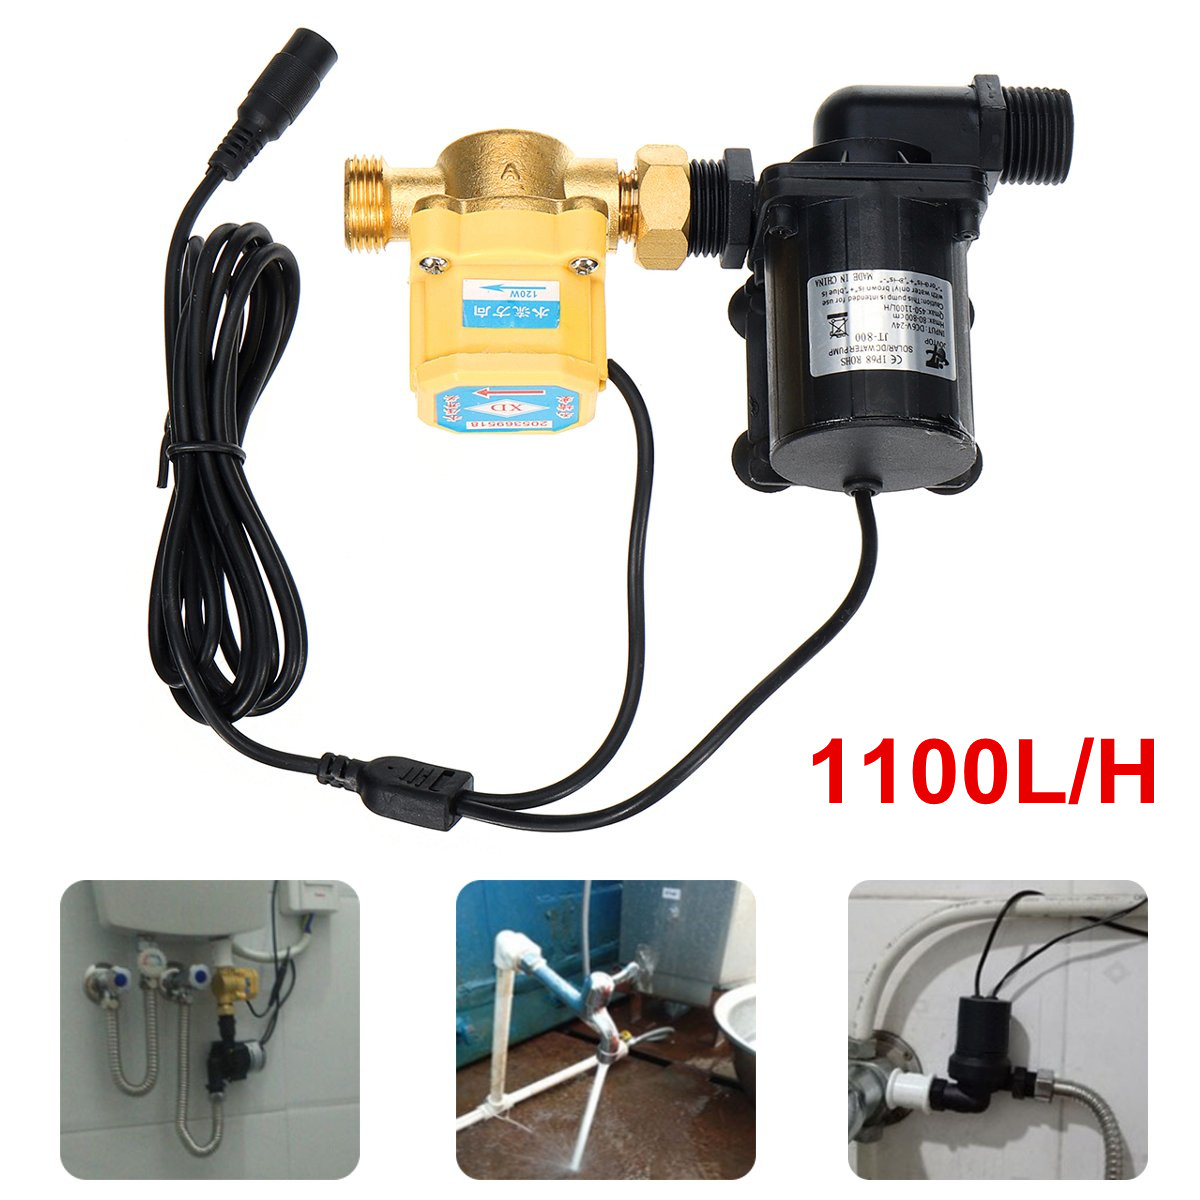 6V-24V DC Water Pump Solar Water Heater Shower Machine Booster Pump Ceramic Shaft Brushless Motor Pump With Water Flow Switch